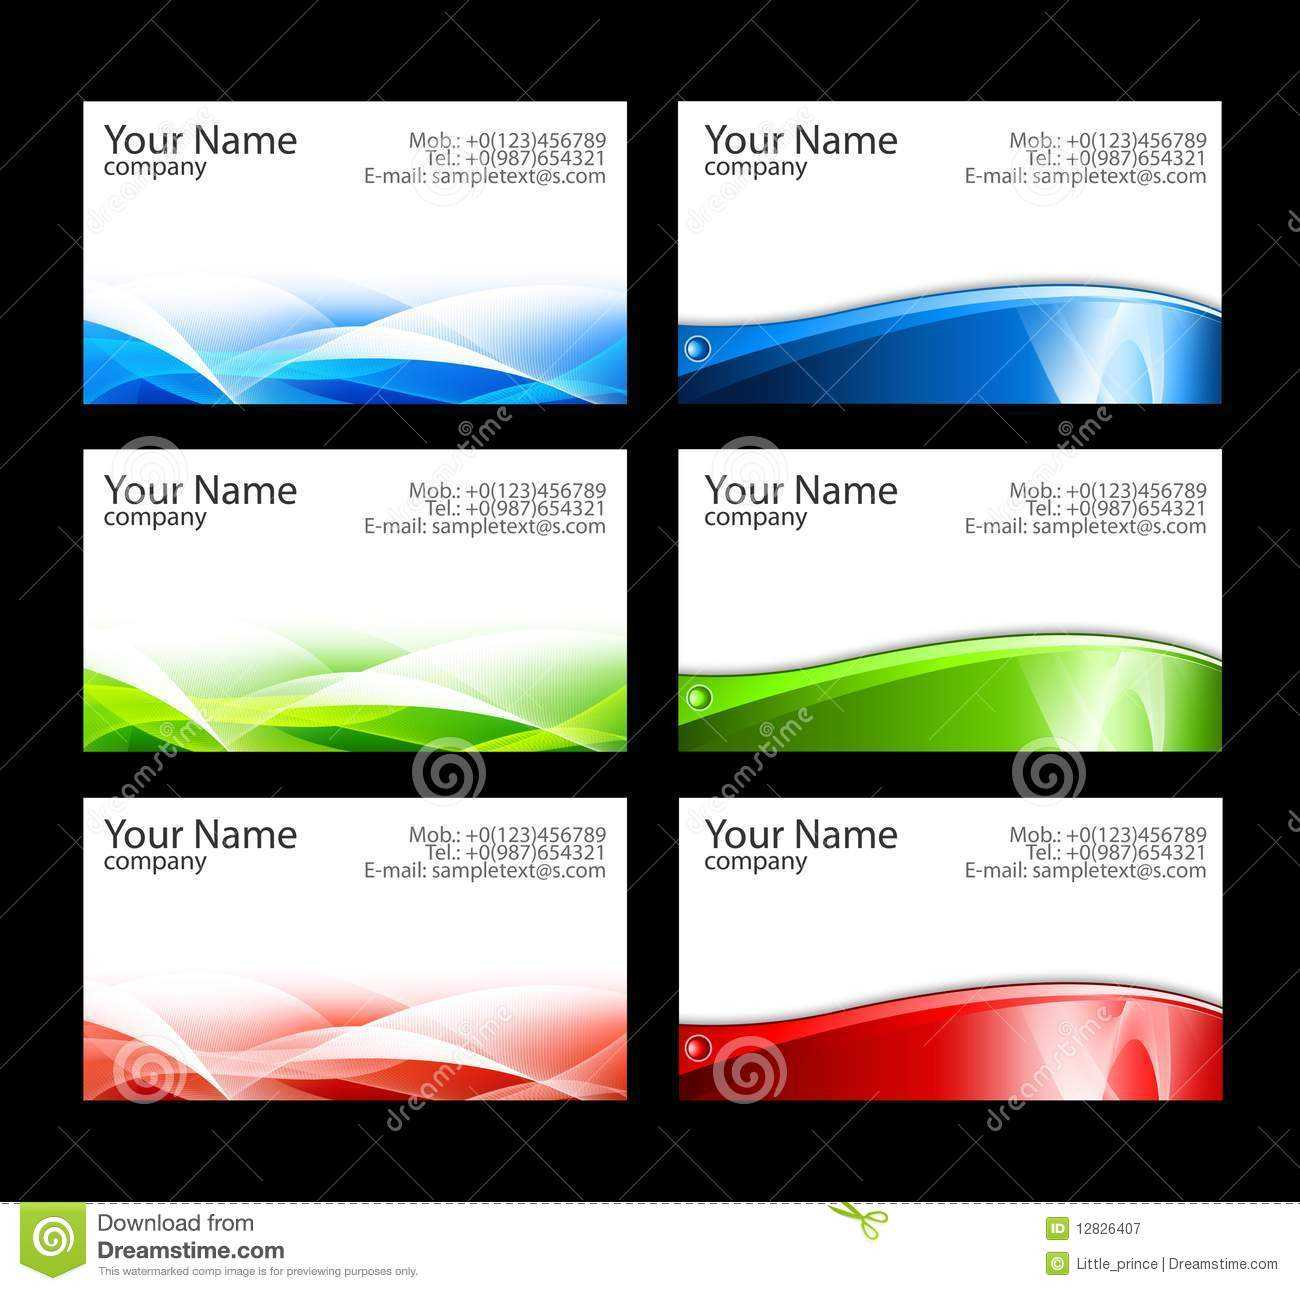 Business Cards Templates Stock Illustration. Illustration Of Intended For Templates For Visiting Cards Free Downloads